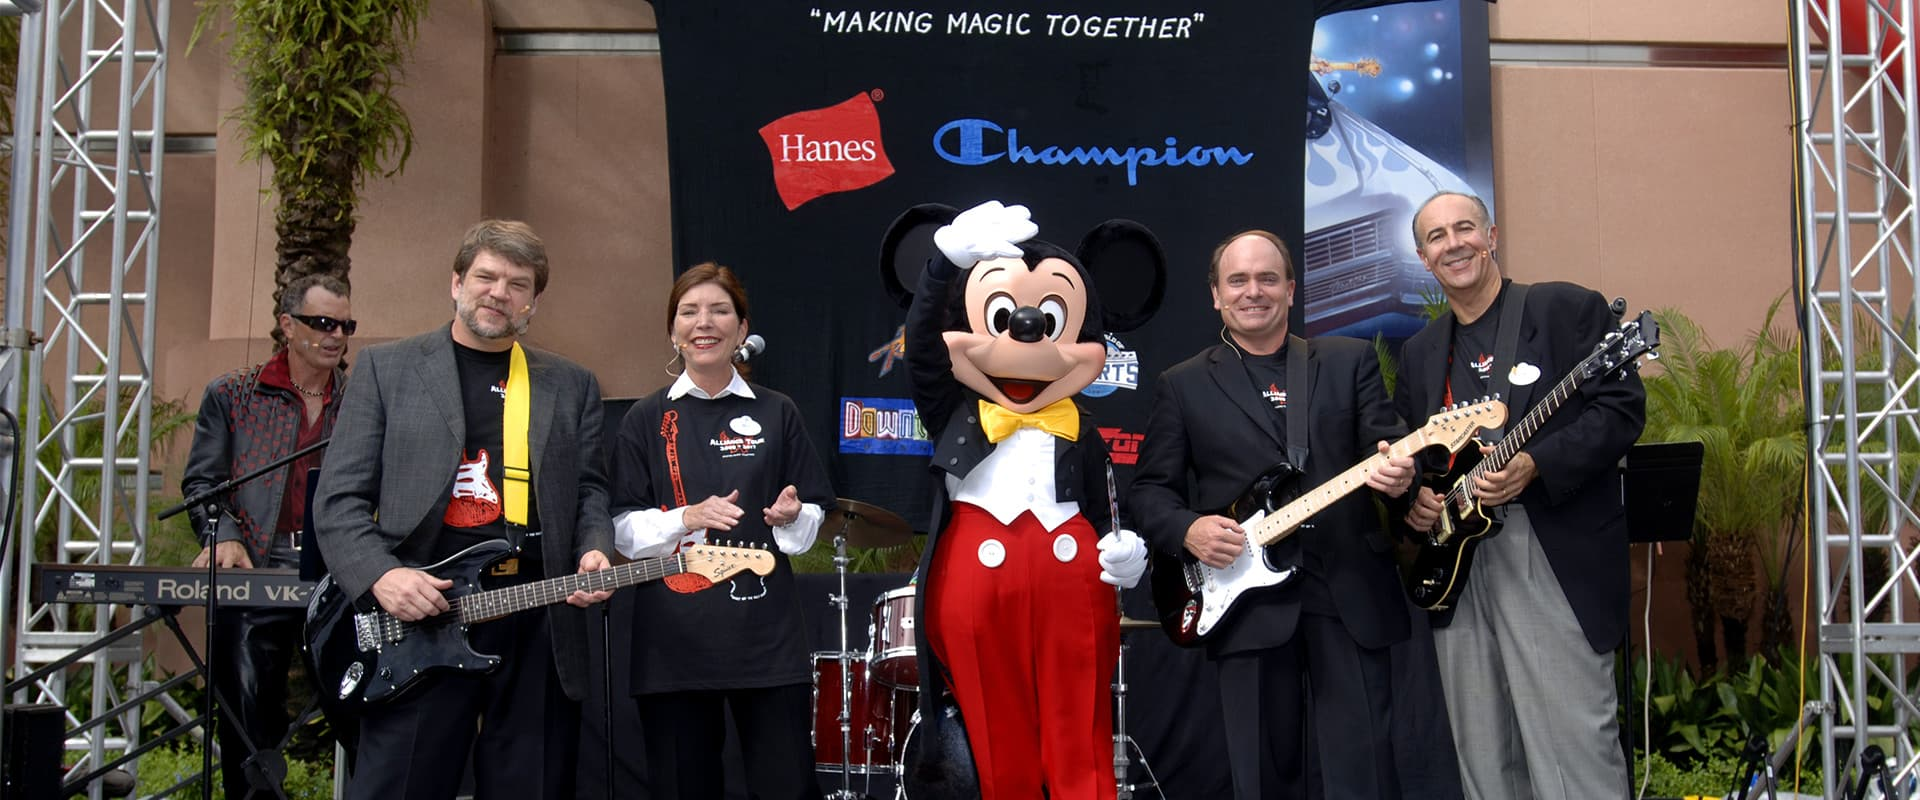 Disney and Hanes brands marketing event featuring Mickey Mouse on stage